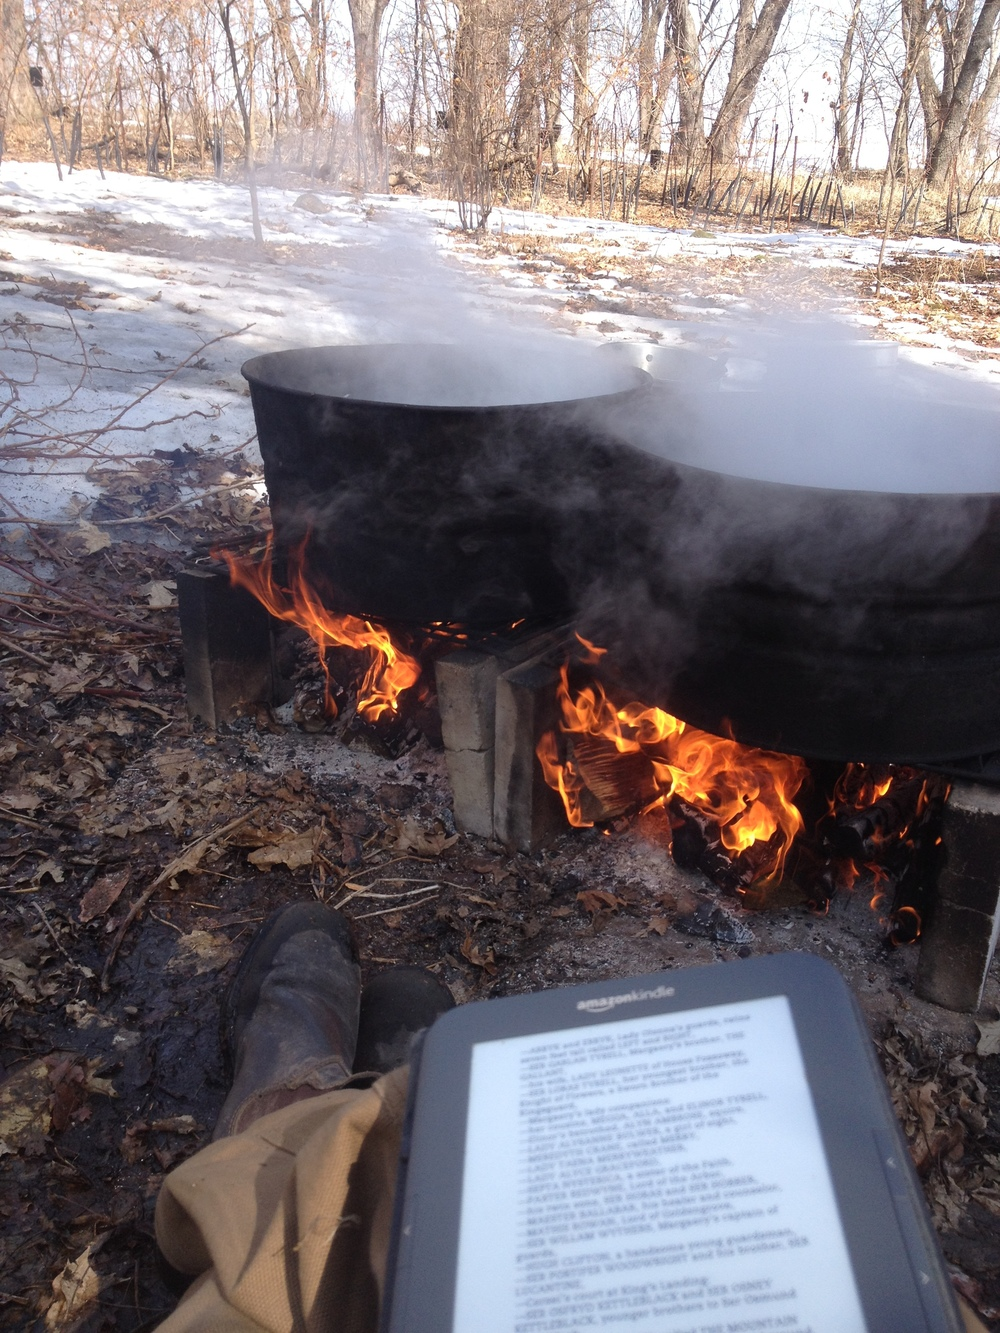 Once you have about 30-45 gallons of sap, it's time to boil! This is usually an all day process and must be done outside over a fire or with a fancy evaporator. On average, it takes about 43 gallons of sap to get 1 gallon of syrup! Sap is usually 2-5% sugar depending on the species and maple syrup isn't considered maple syrup until the water is evaporated until it's about 66% sugar.